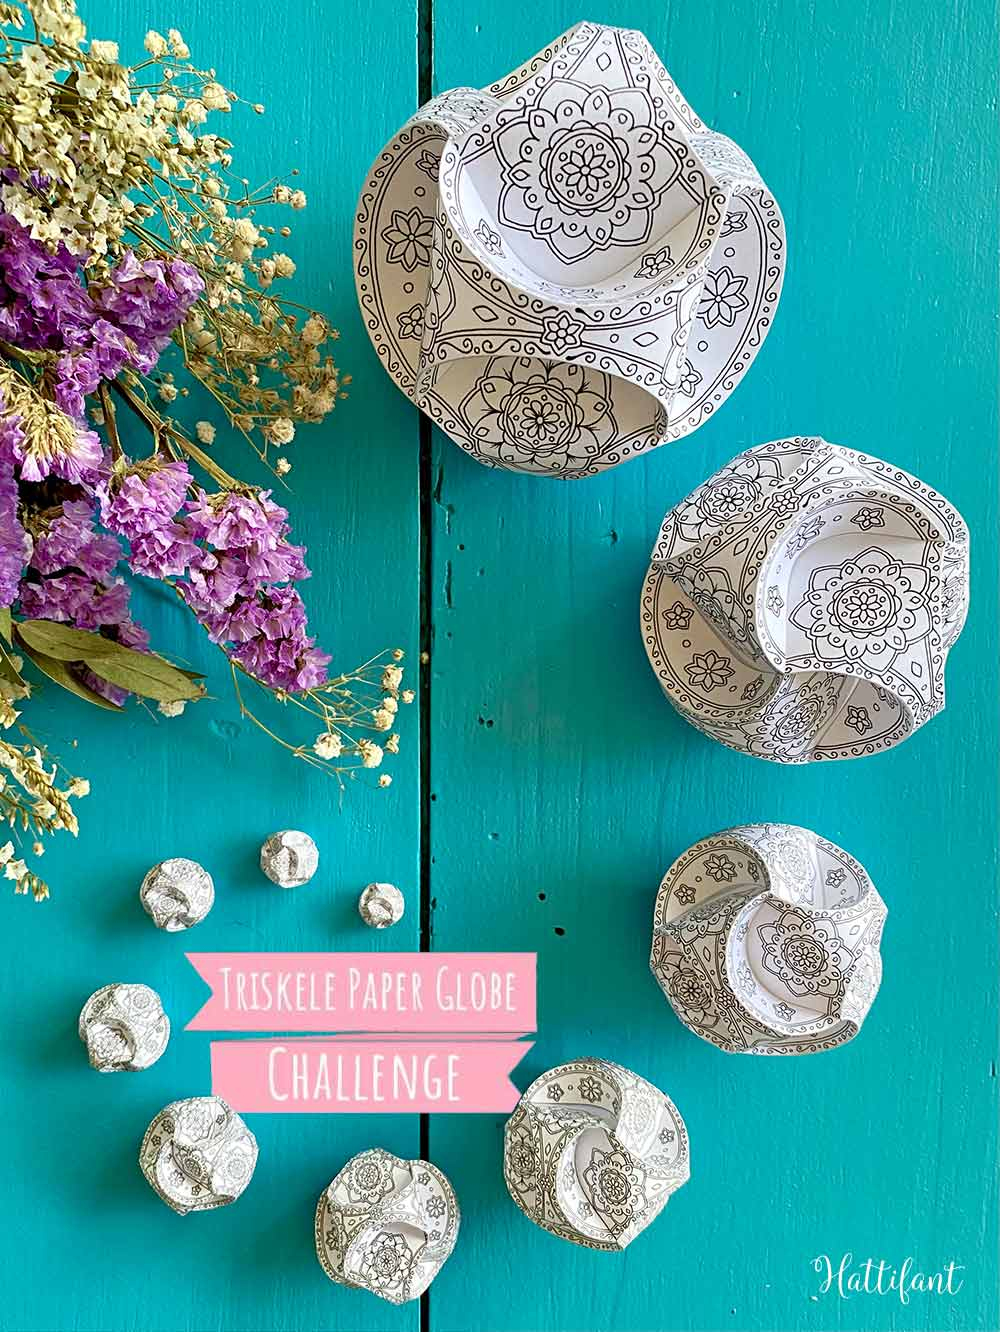 Hattifant's Triskele Paper Globe Challenge with 10 different sizes to tesst your craft skills.